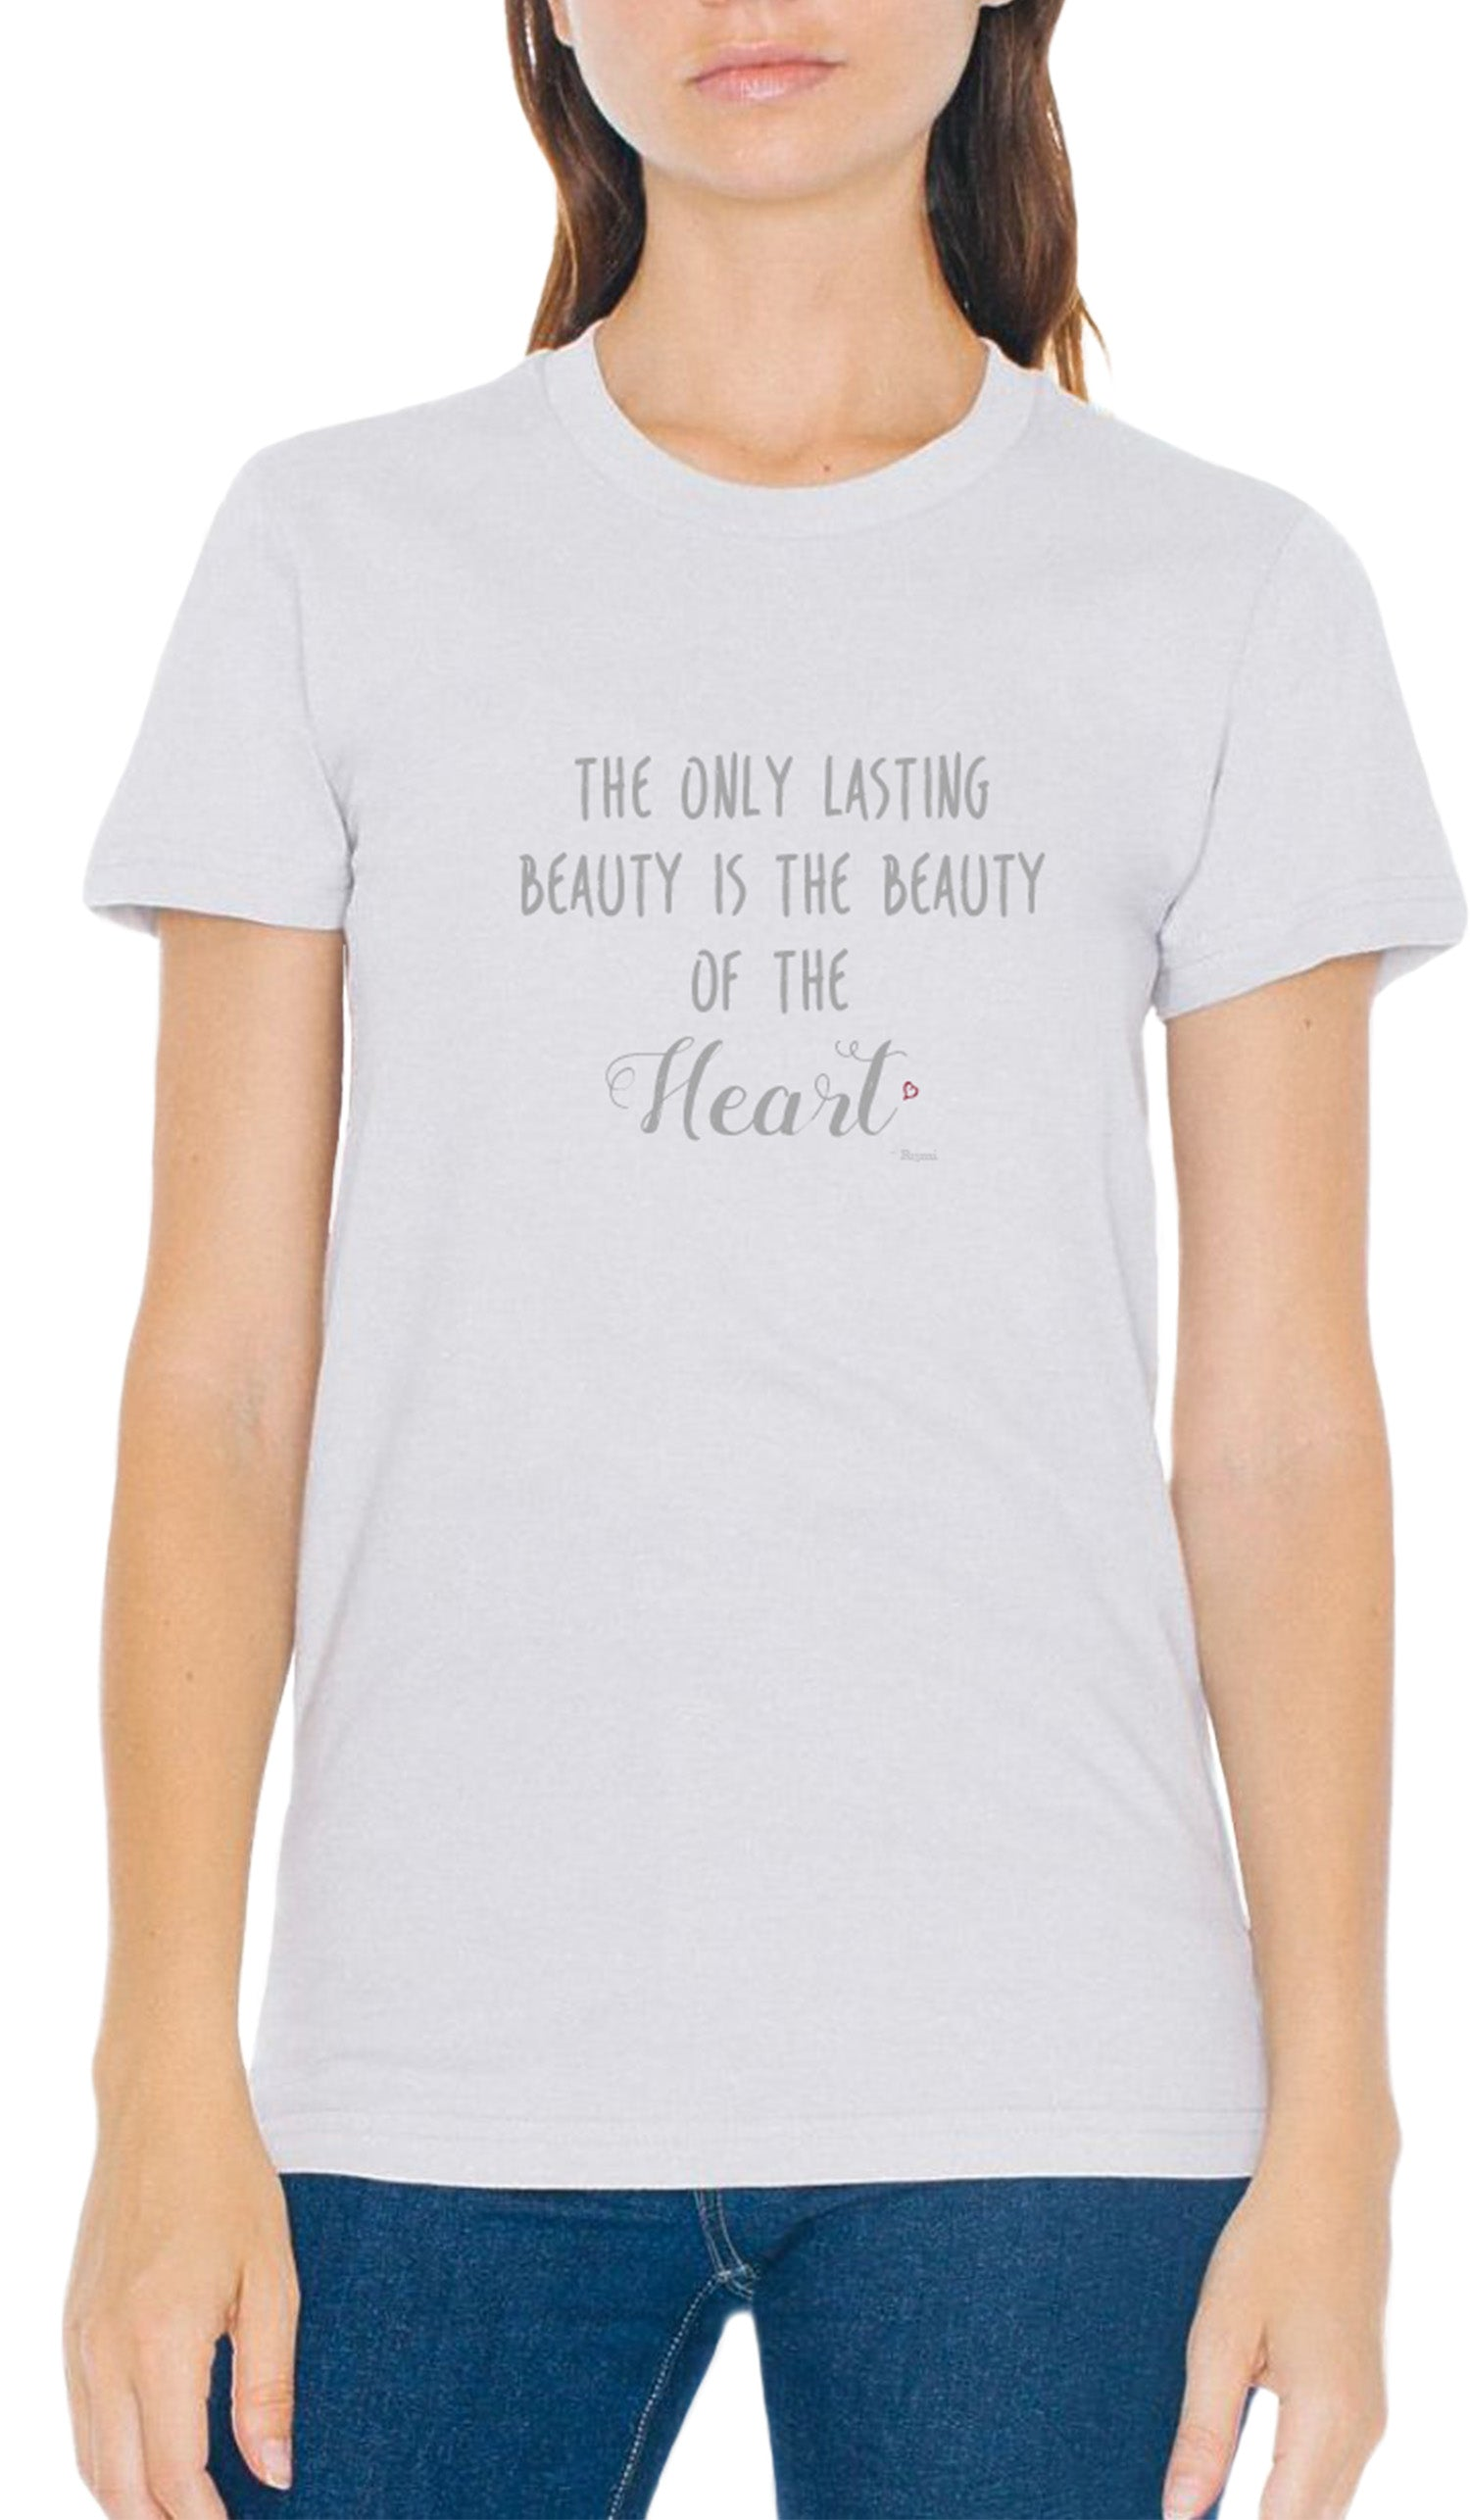 Rumi Quotes Fine Short Sleeve Womens T Shirt - Heart - Gray